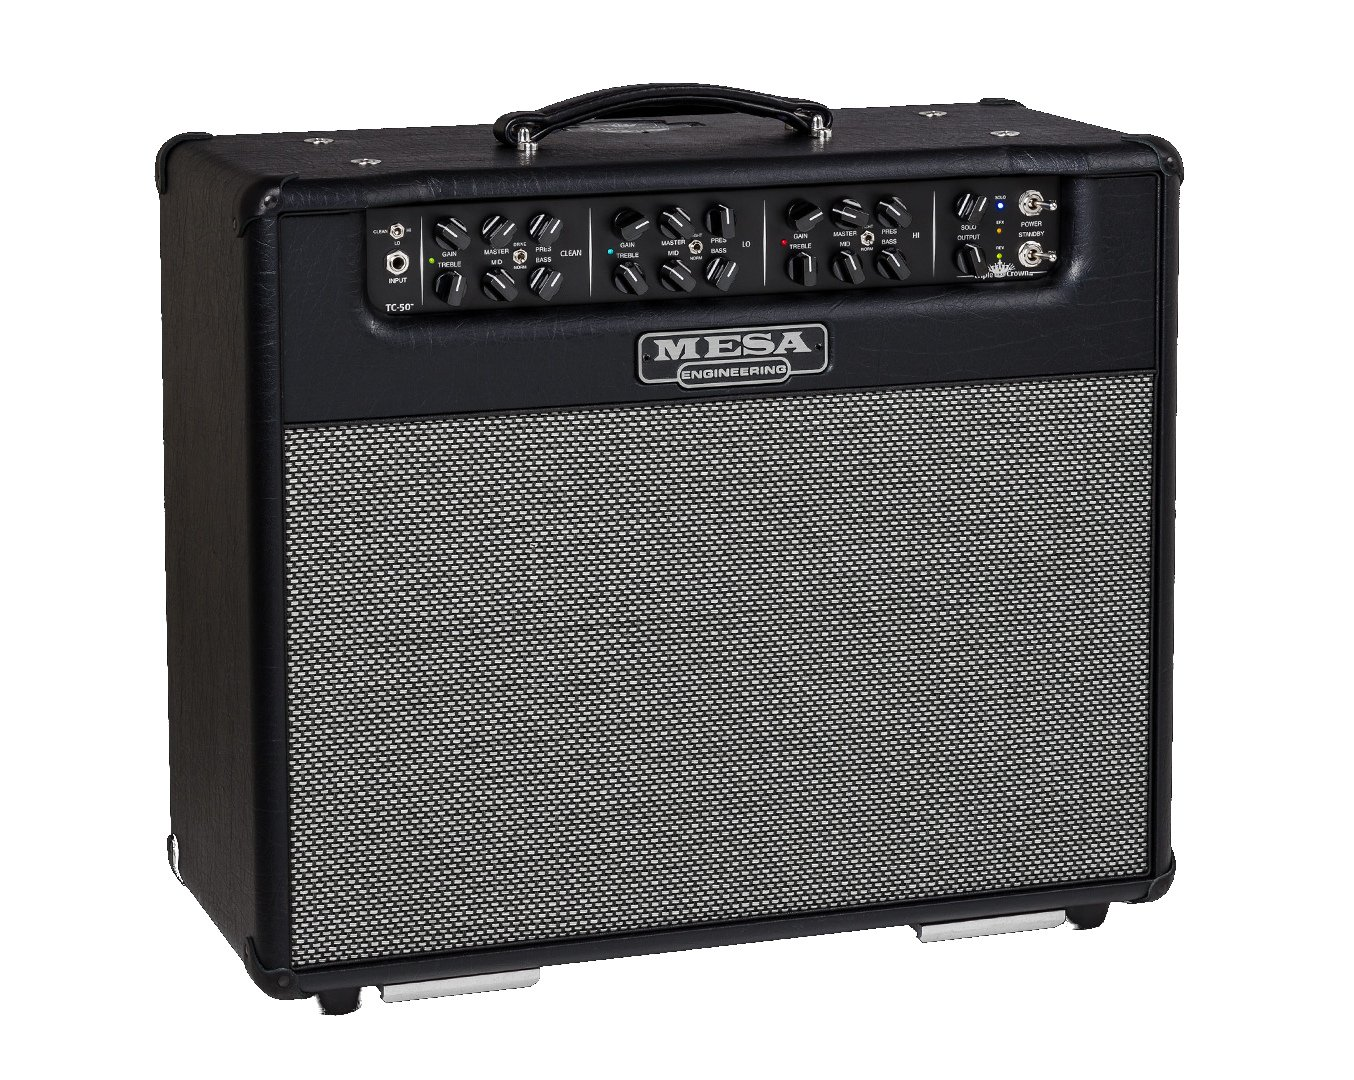 mesa boogie triple crown 1x12 triple crown tc 50 1x12 combo amp full compass systems. Black Bedroom Furniture Sets. Home Design Ideas